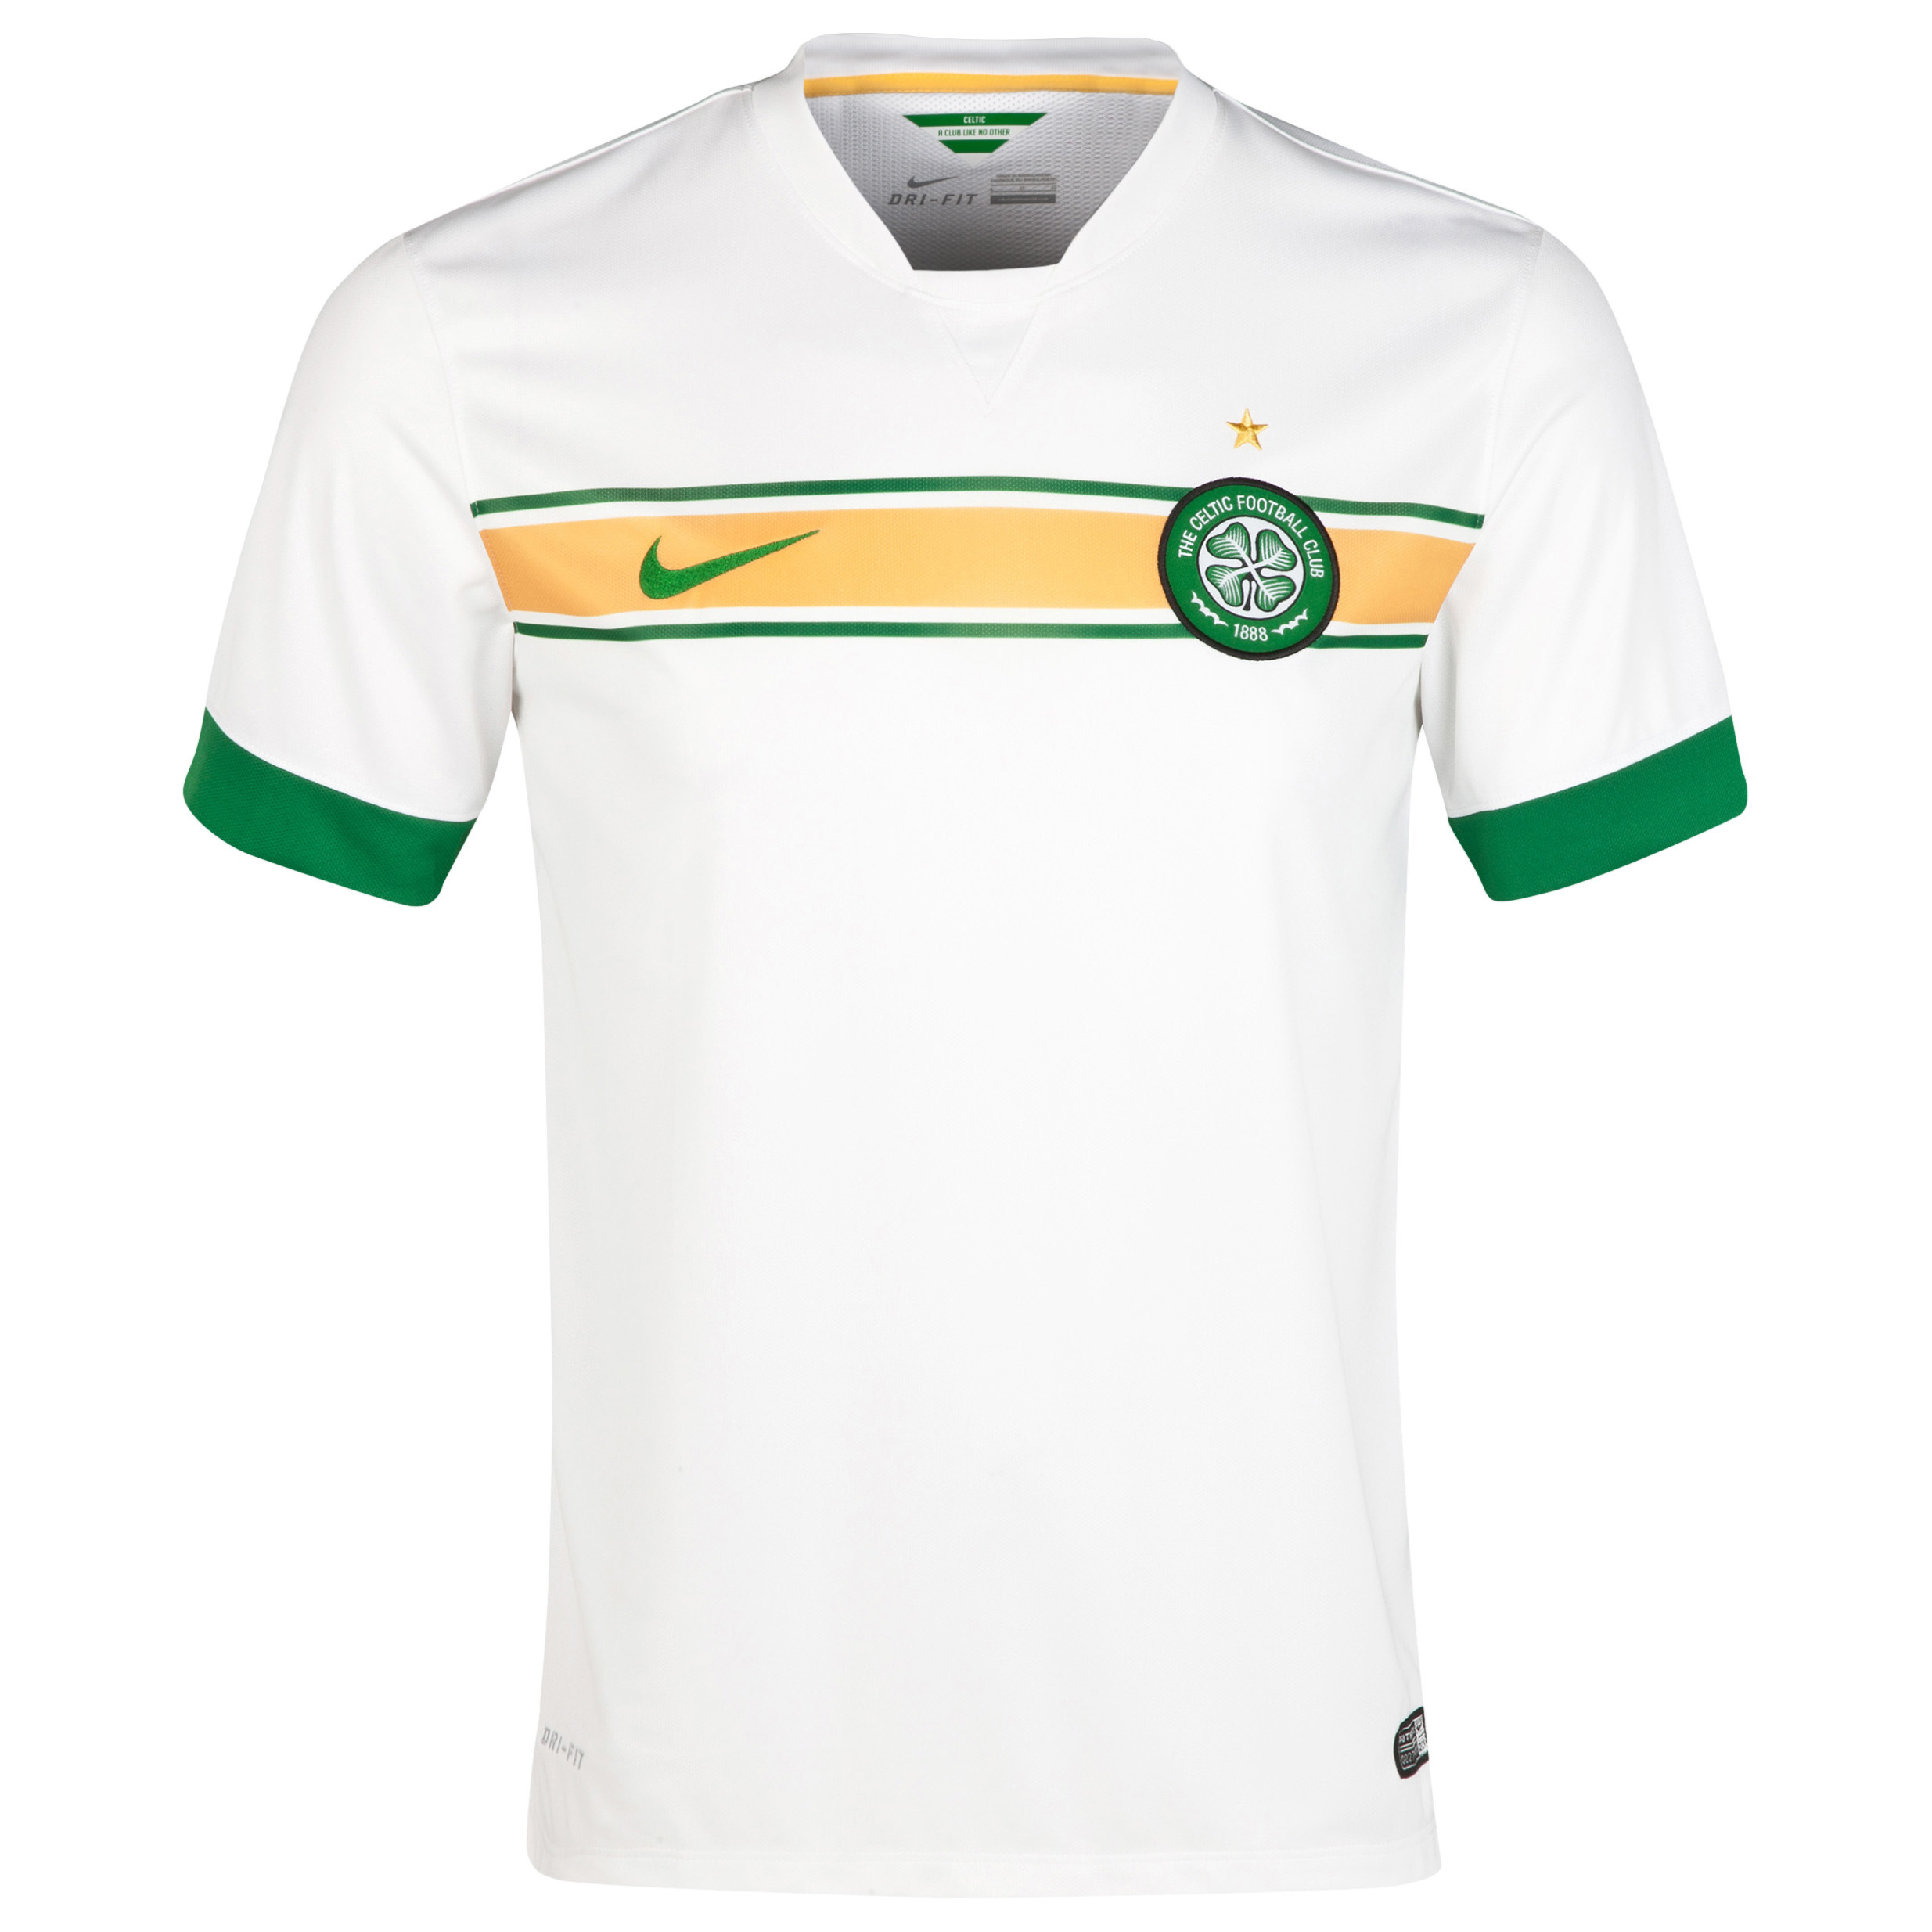 Celtic 3rd Shirt 2014/15 - Unsponsored White